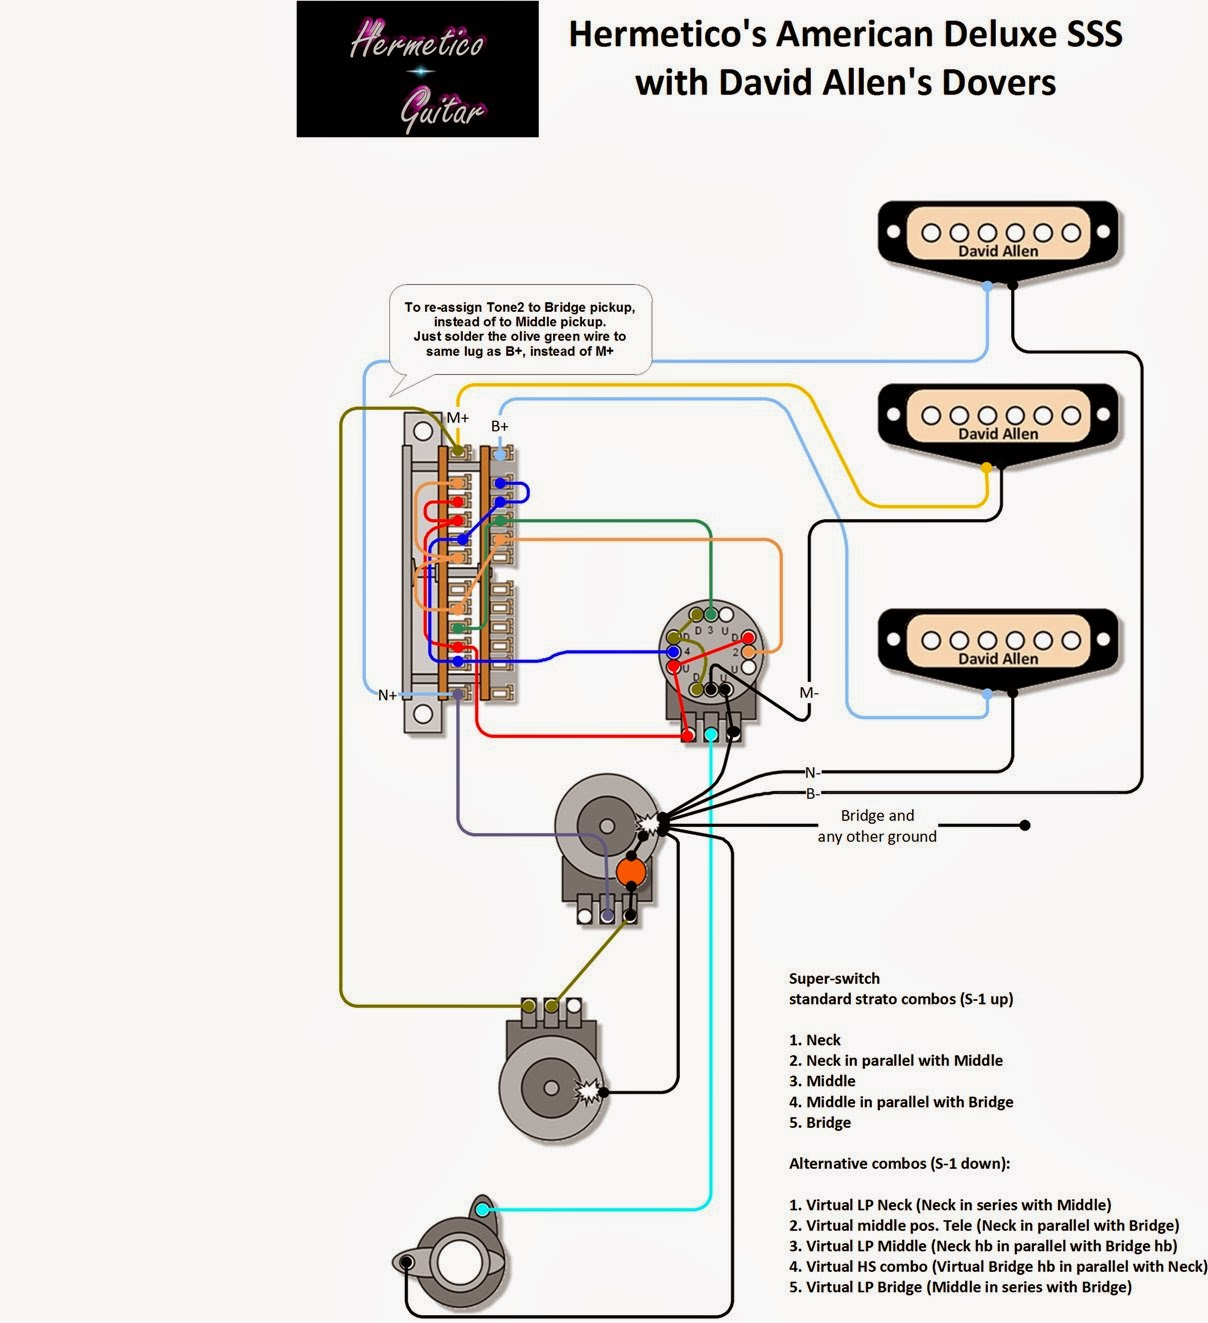 Mid Boost Schematic Wiring Diagrams For Dummies Pedal Diagram Hermetico Guitar Fender American Deluxe Sss 2010 Model Circuit Clapton